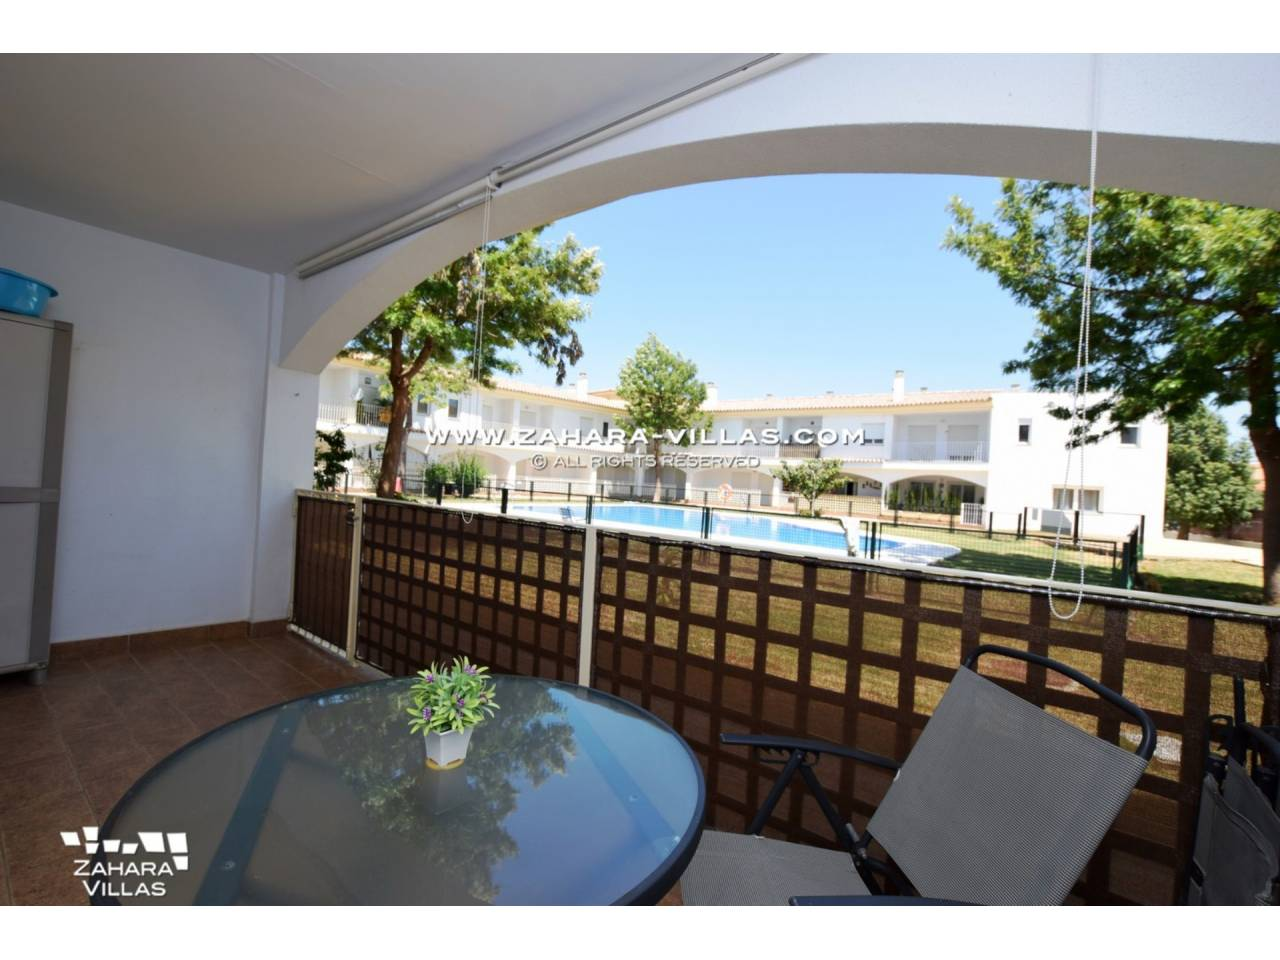 Imagen 1 de Apartment for sale in Costa de la Luz